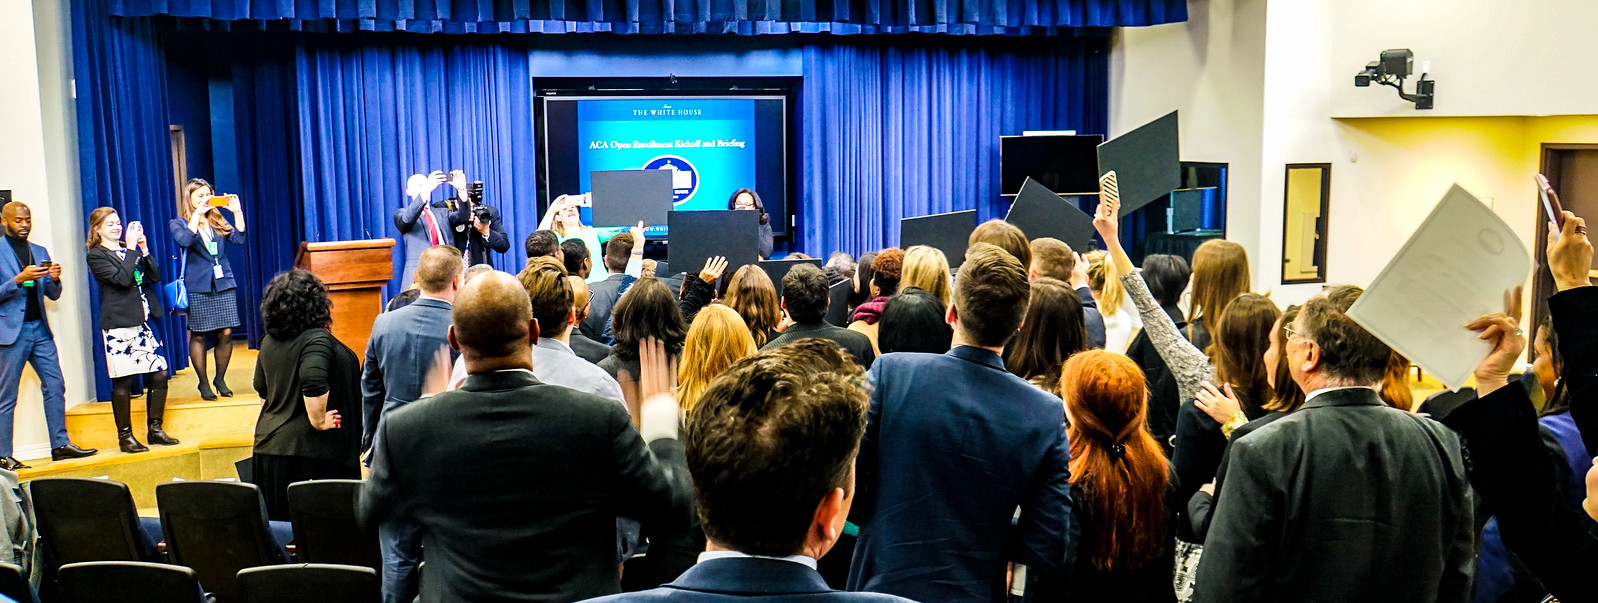 2016.11.14 #GetCovered briefing at the White House, Washington, DC USA 08789